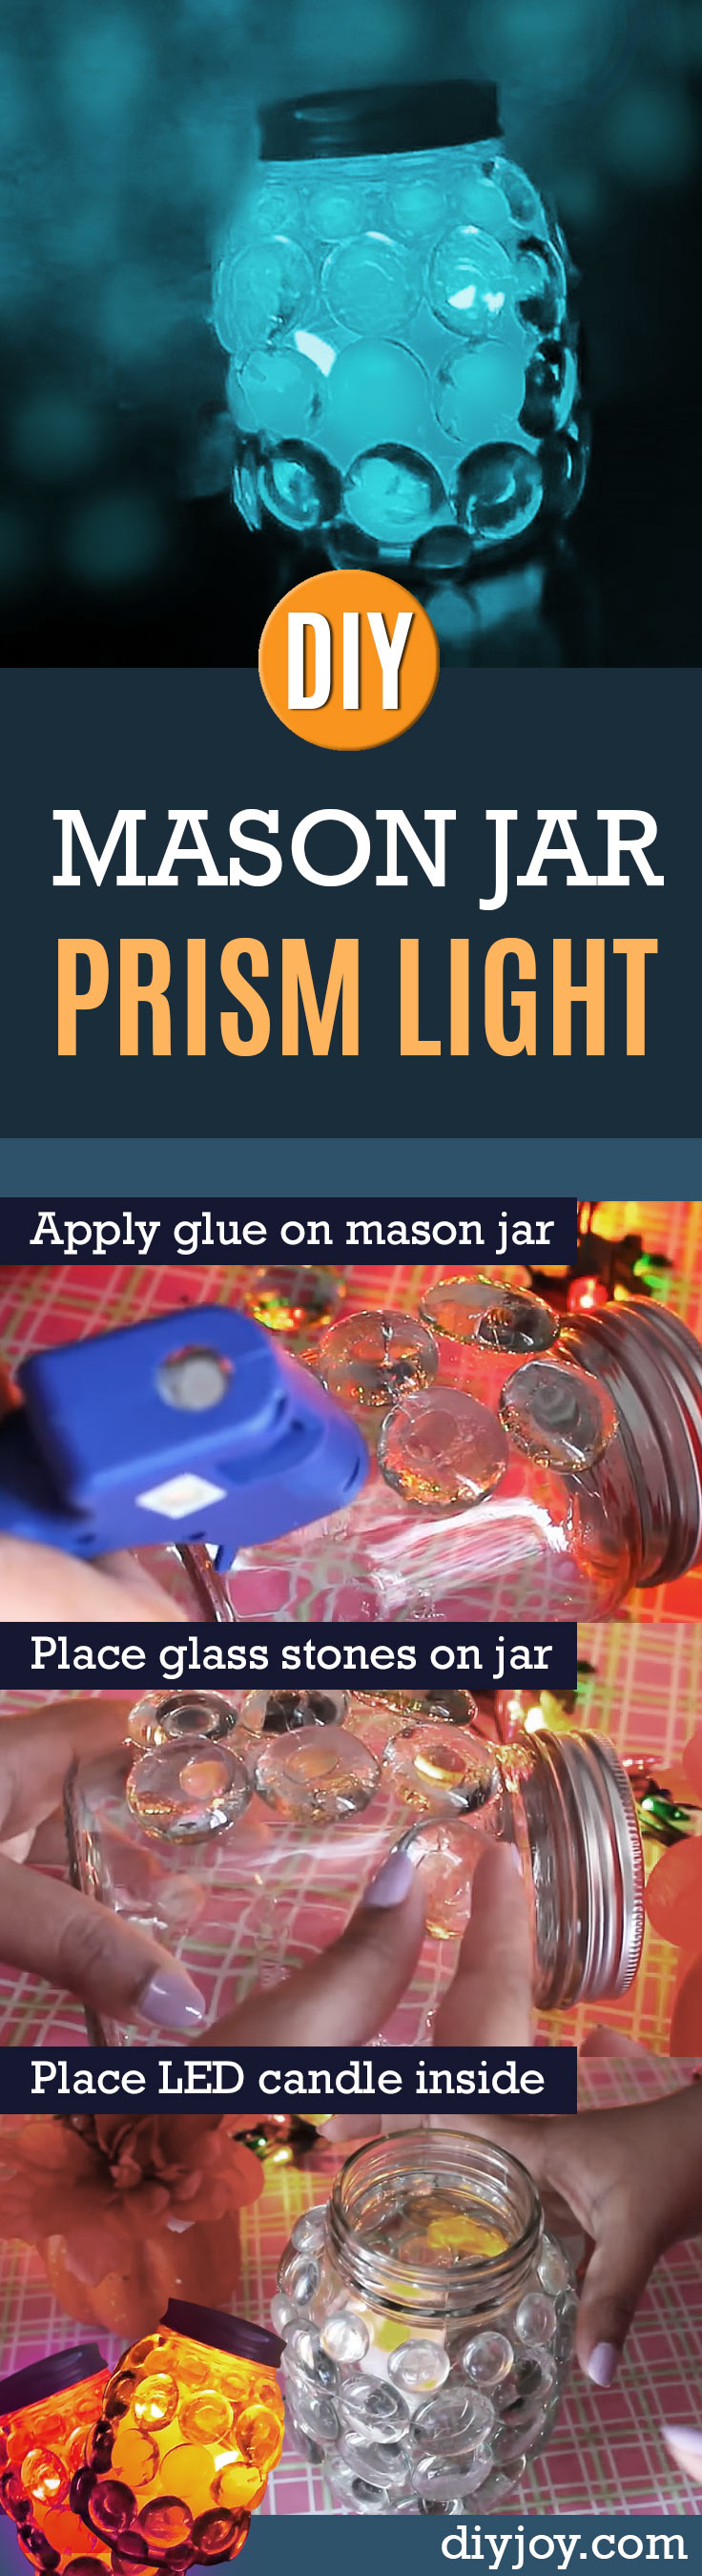 DIY Mason Jar Prism Light | Cool and Easy DIY Decor Ideas on A Budget http://diyjoy.com/mason-jar-crafts-prism-light